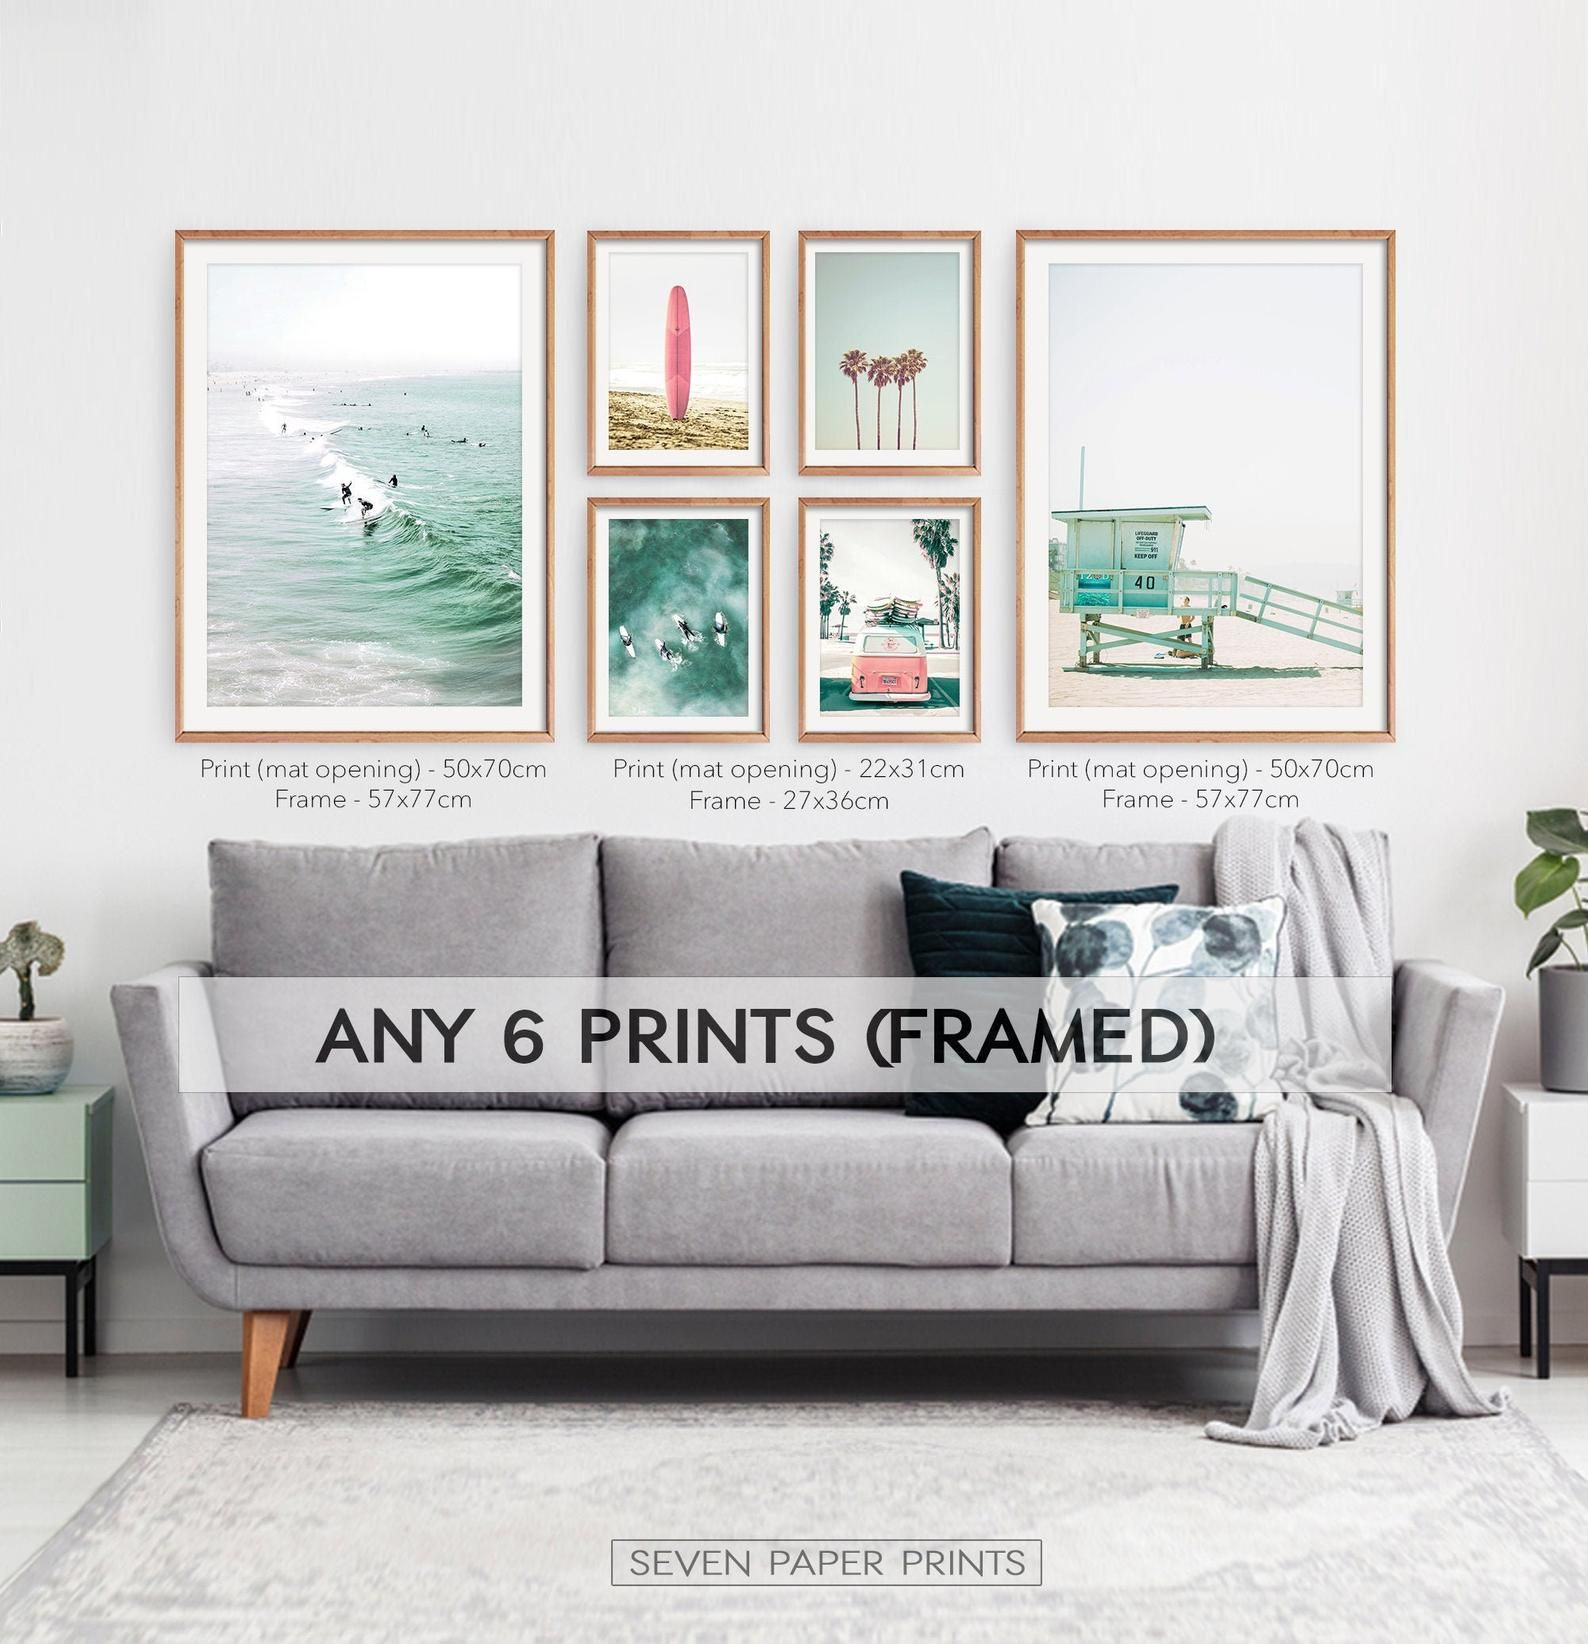 Coastal Set Of 6 Framed Prints On Wood Beach 6 Piece Wall Art For Large Living Room Gallery Wall Shipped Free Surfing Decor Gallery Wall Living Room Frames On Wall Above Couch Decor